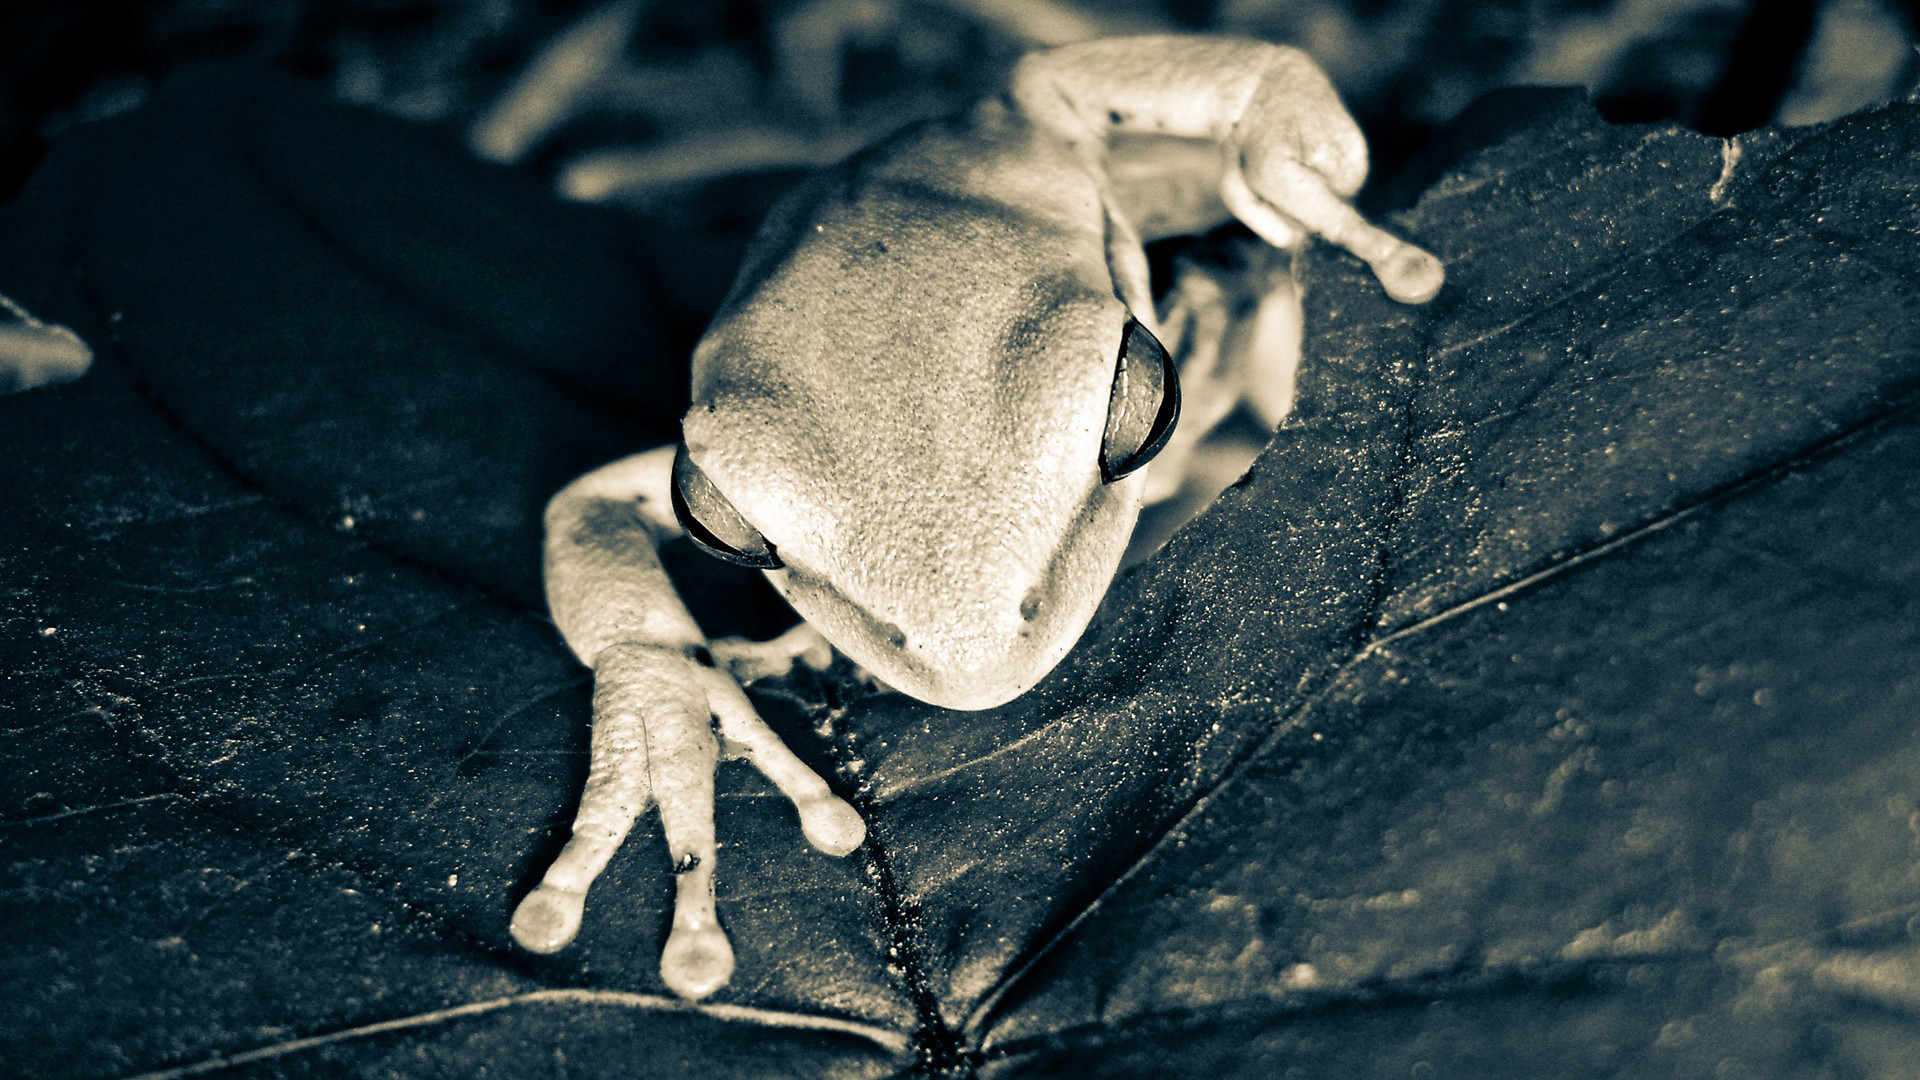 Animal - Tree Frog Wallpaper